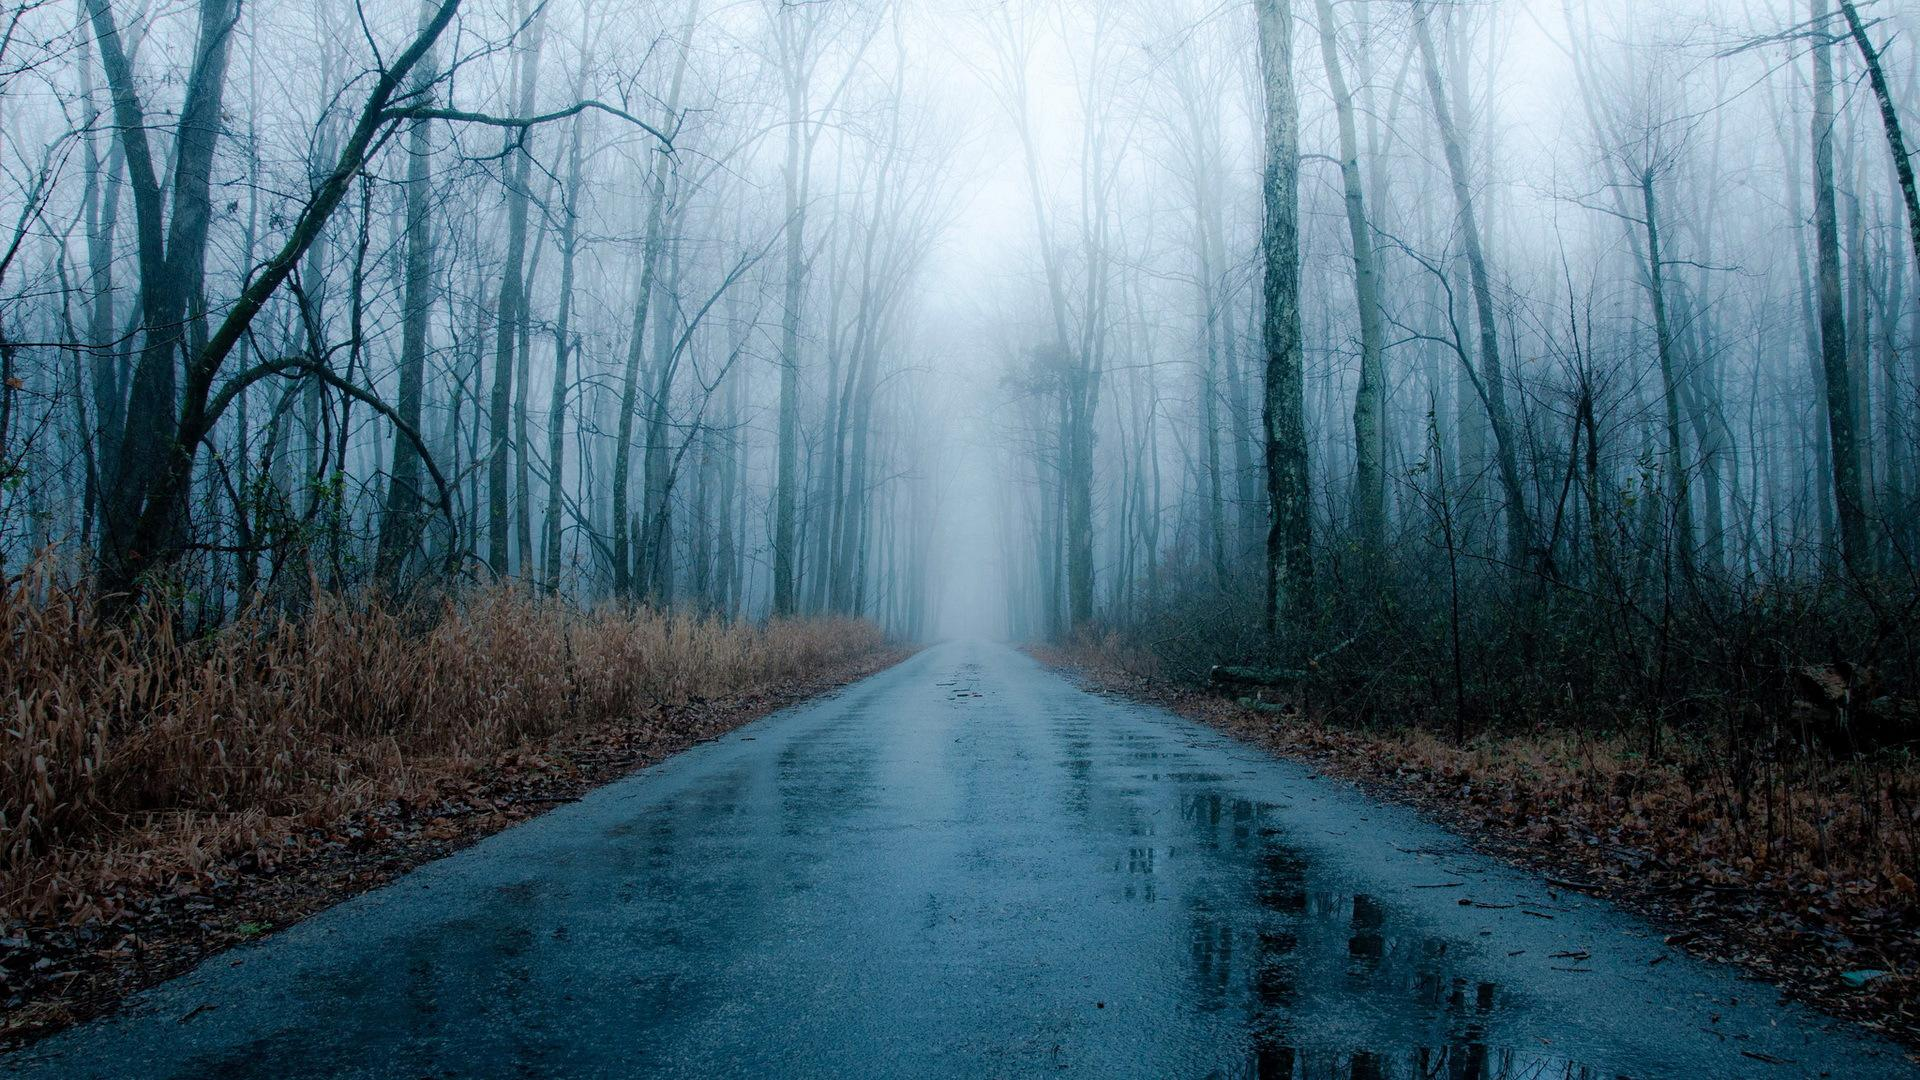 Foggy rainy road through bare forest HQ WALLPAPER - (#158945)